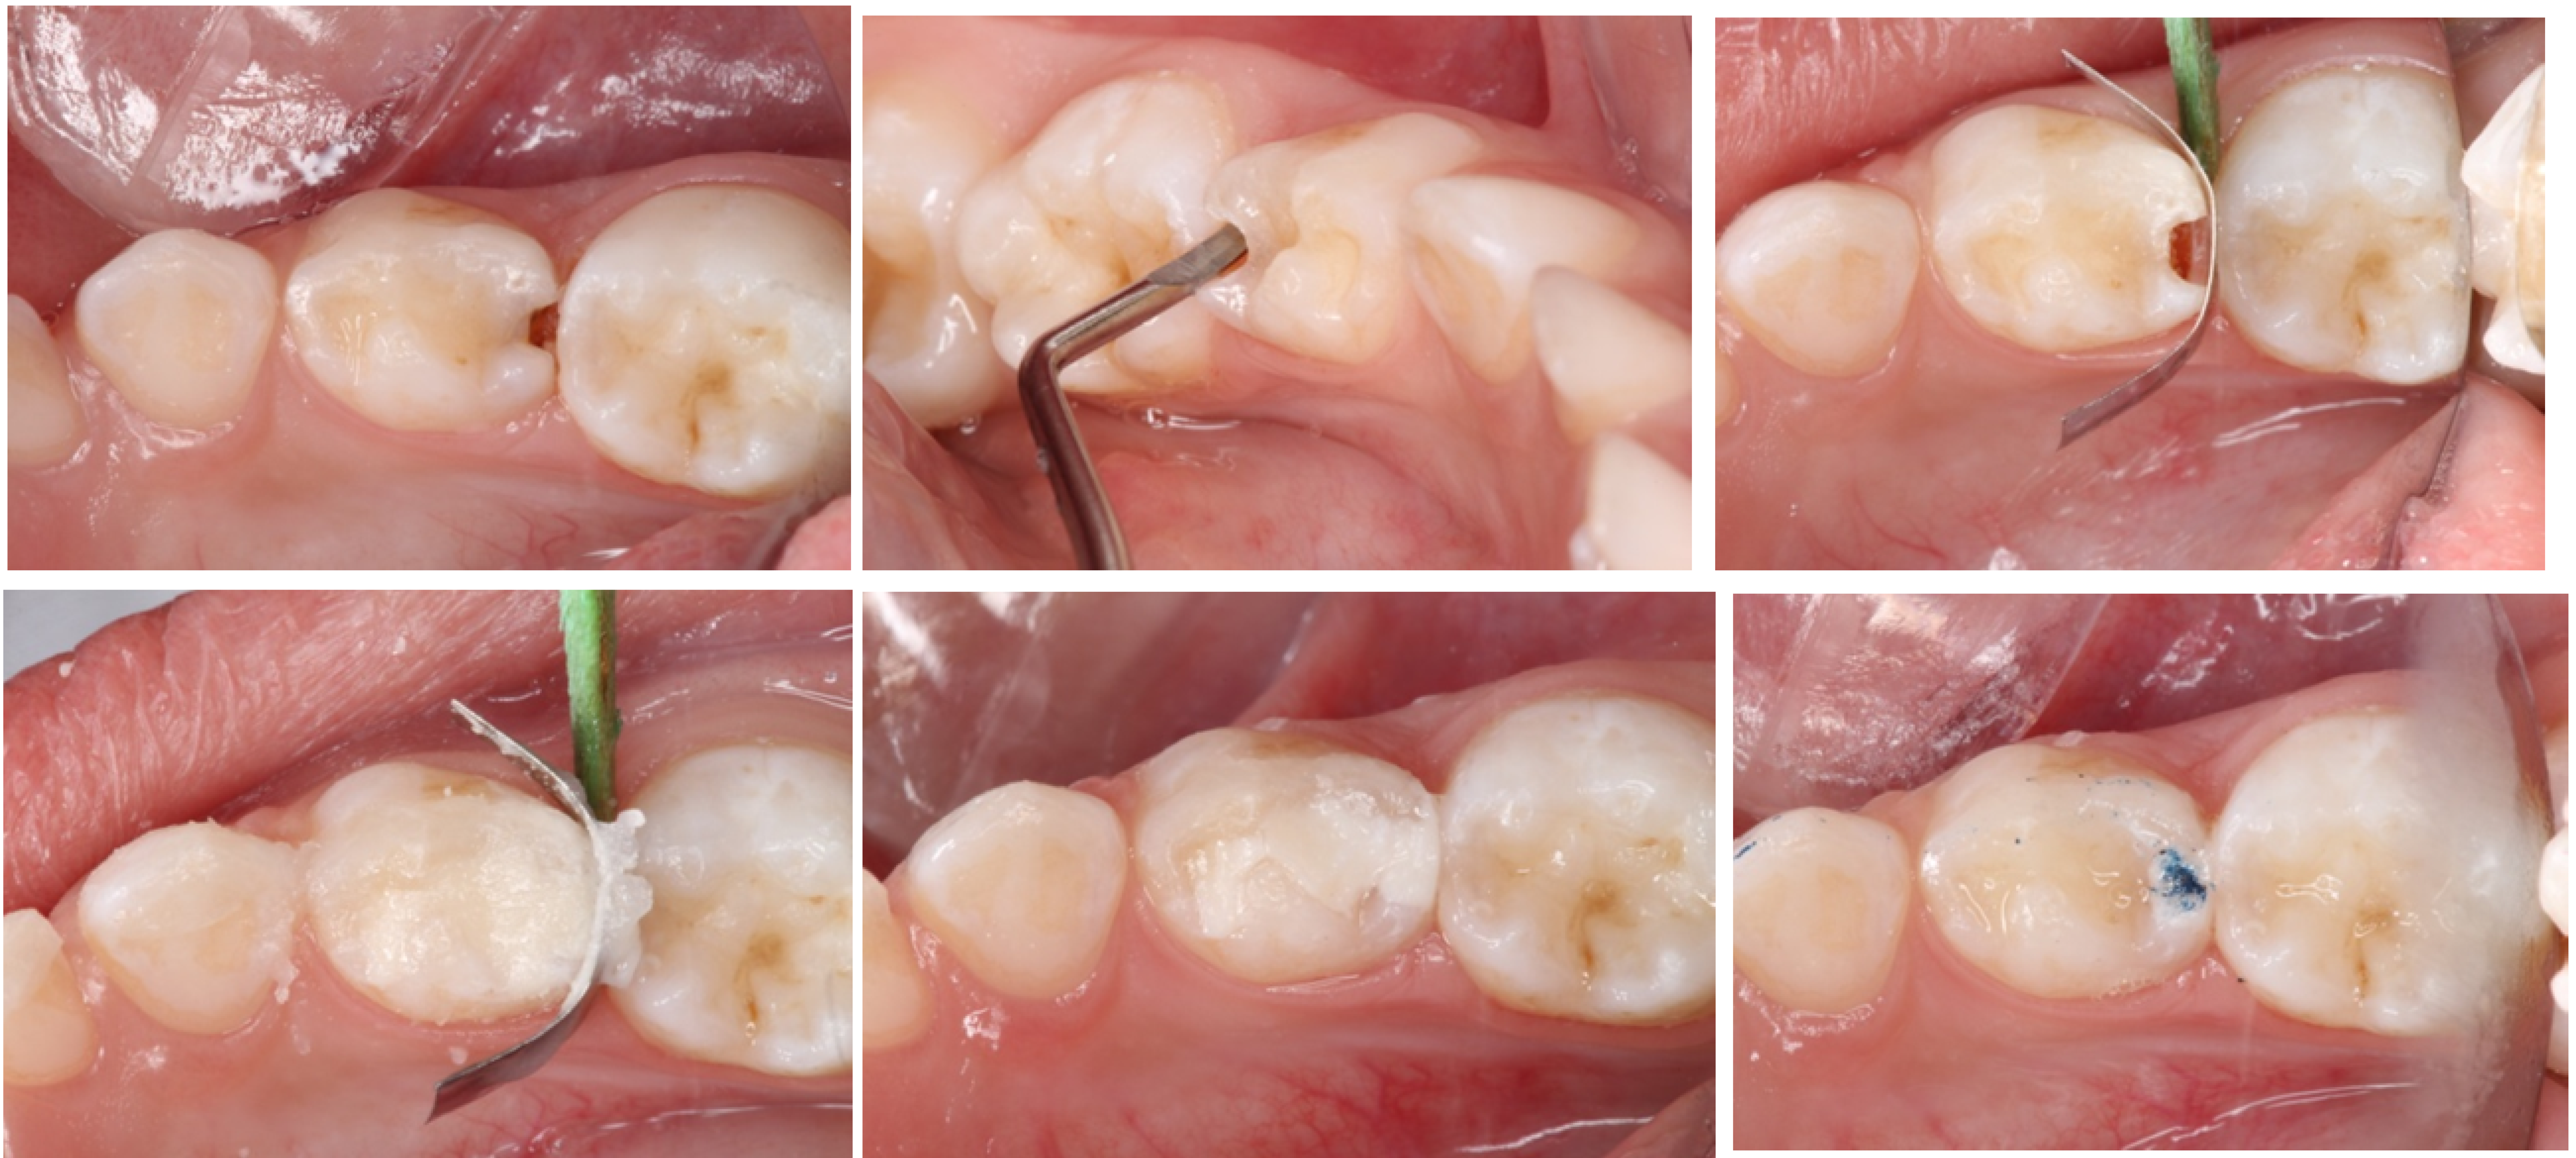 Are the Approximal Caries Lesions in Primary Teeth a